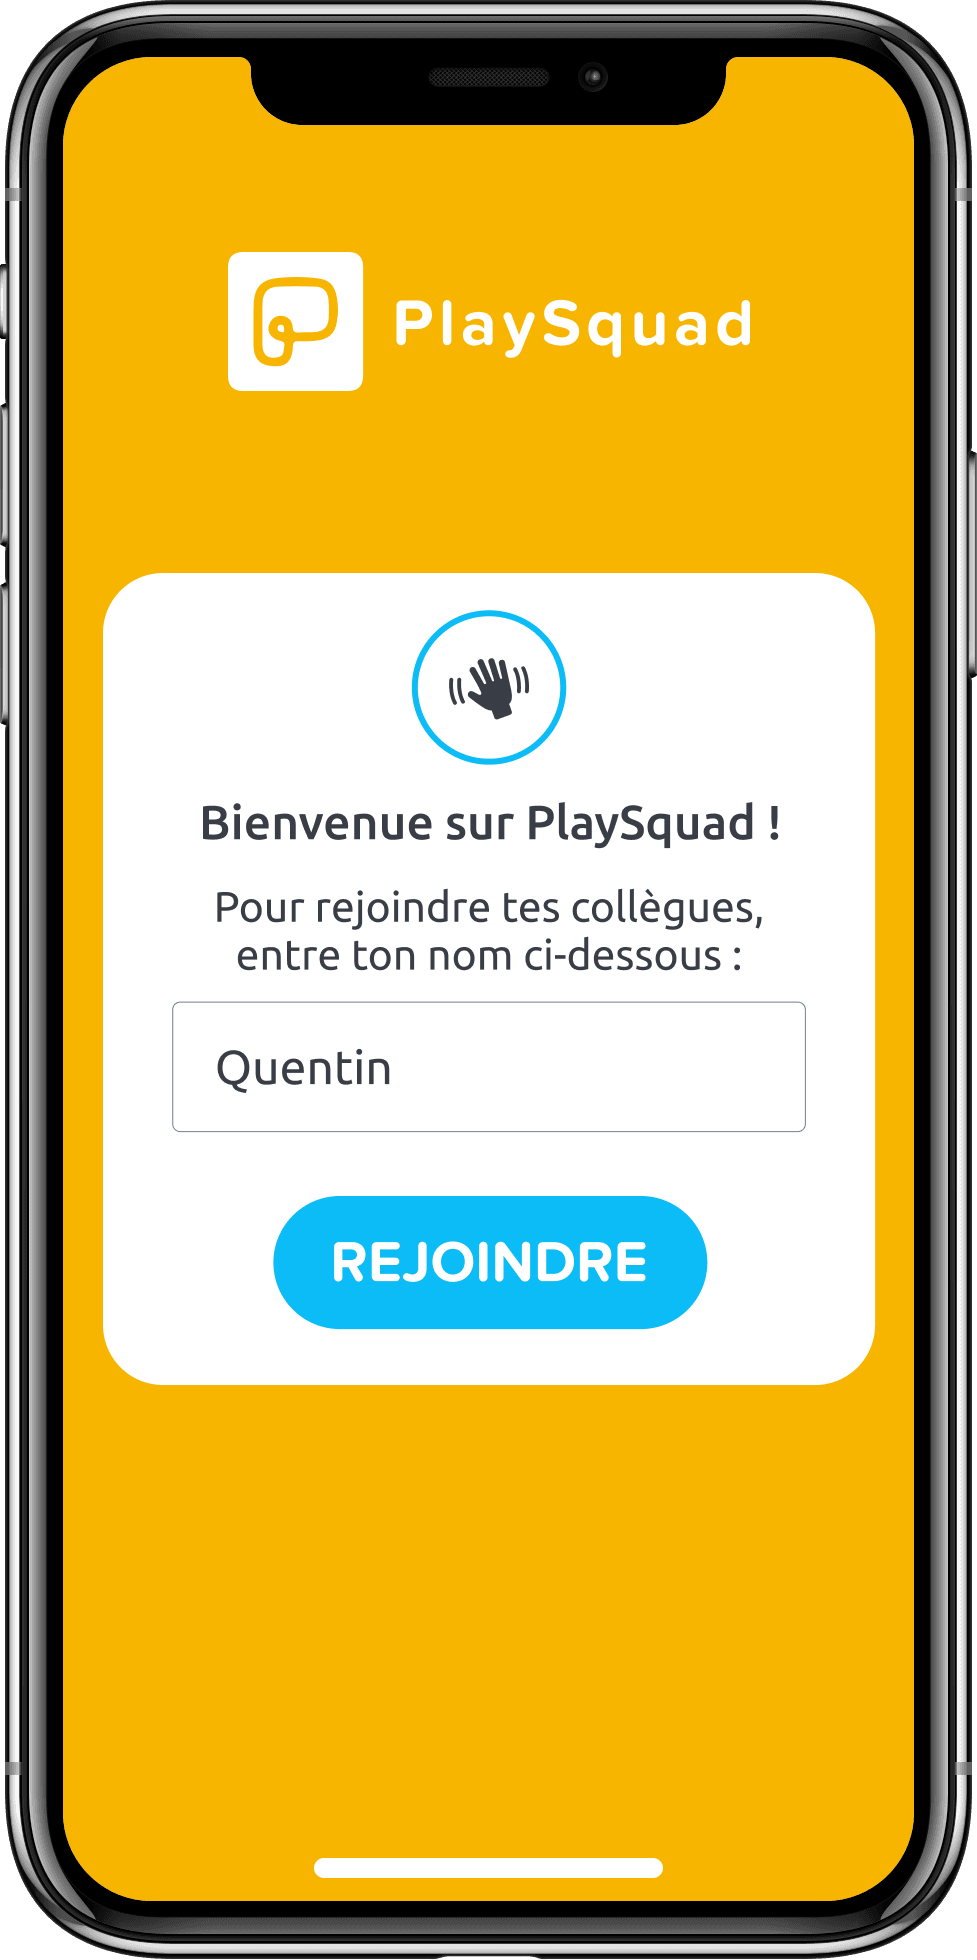 Capture d'écran de l'application PlaySquad au moment de rejoindre le jeu